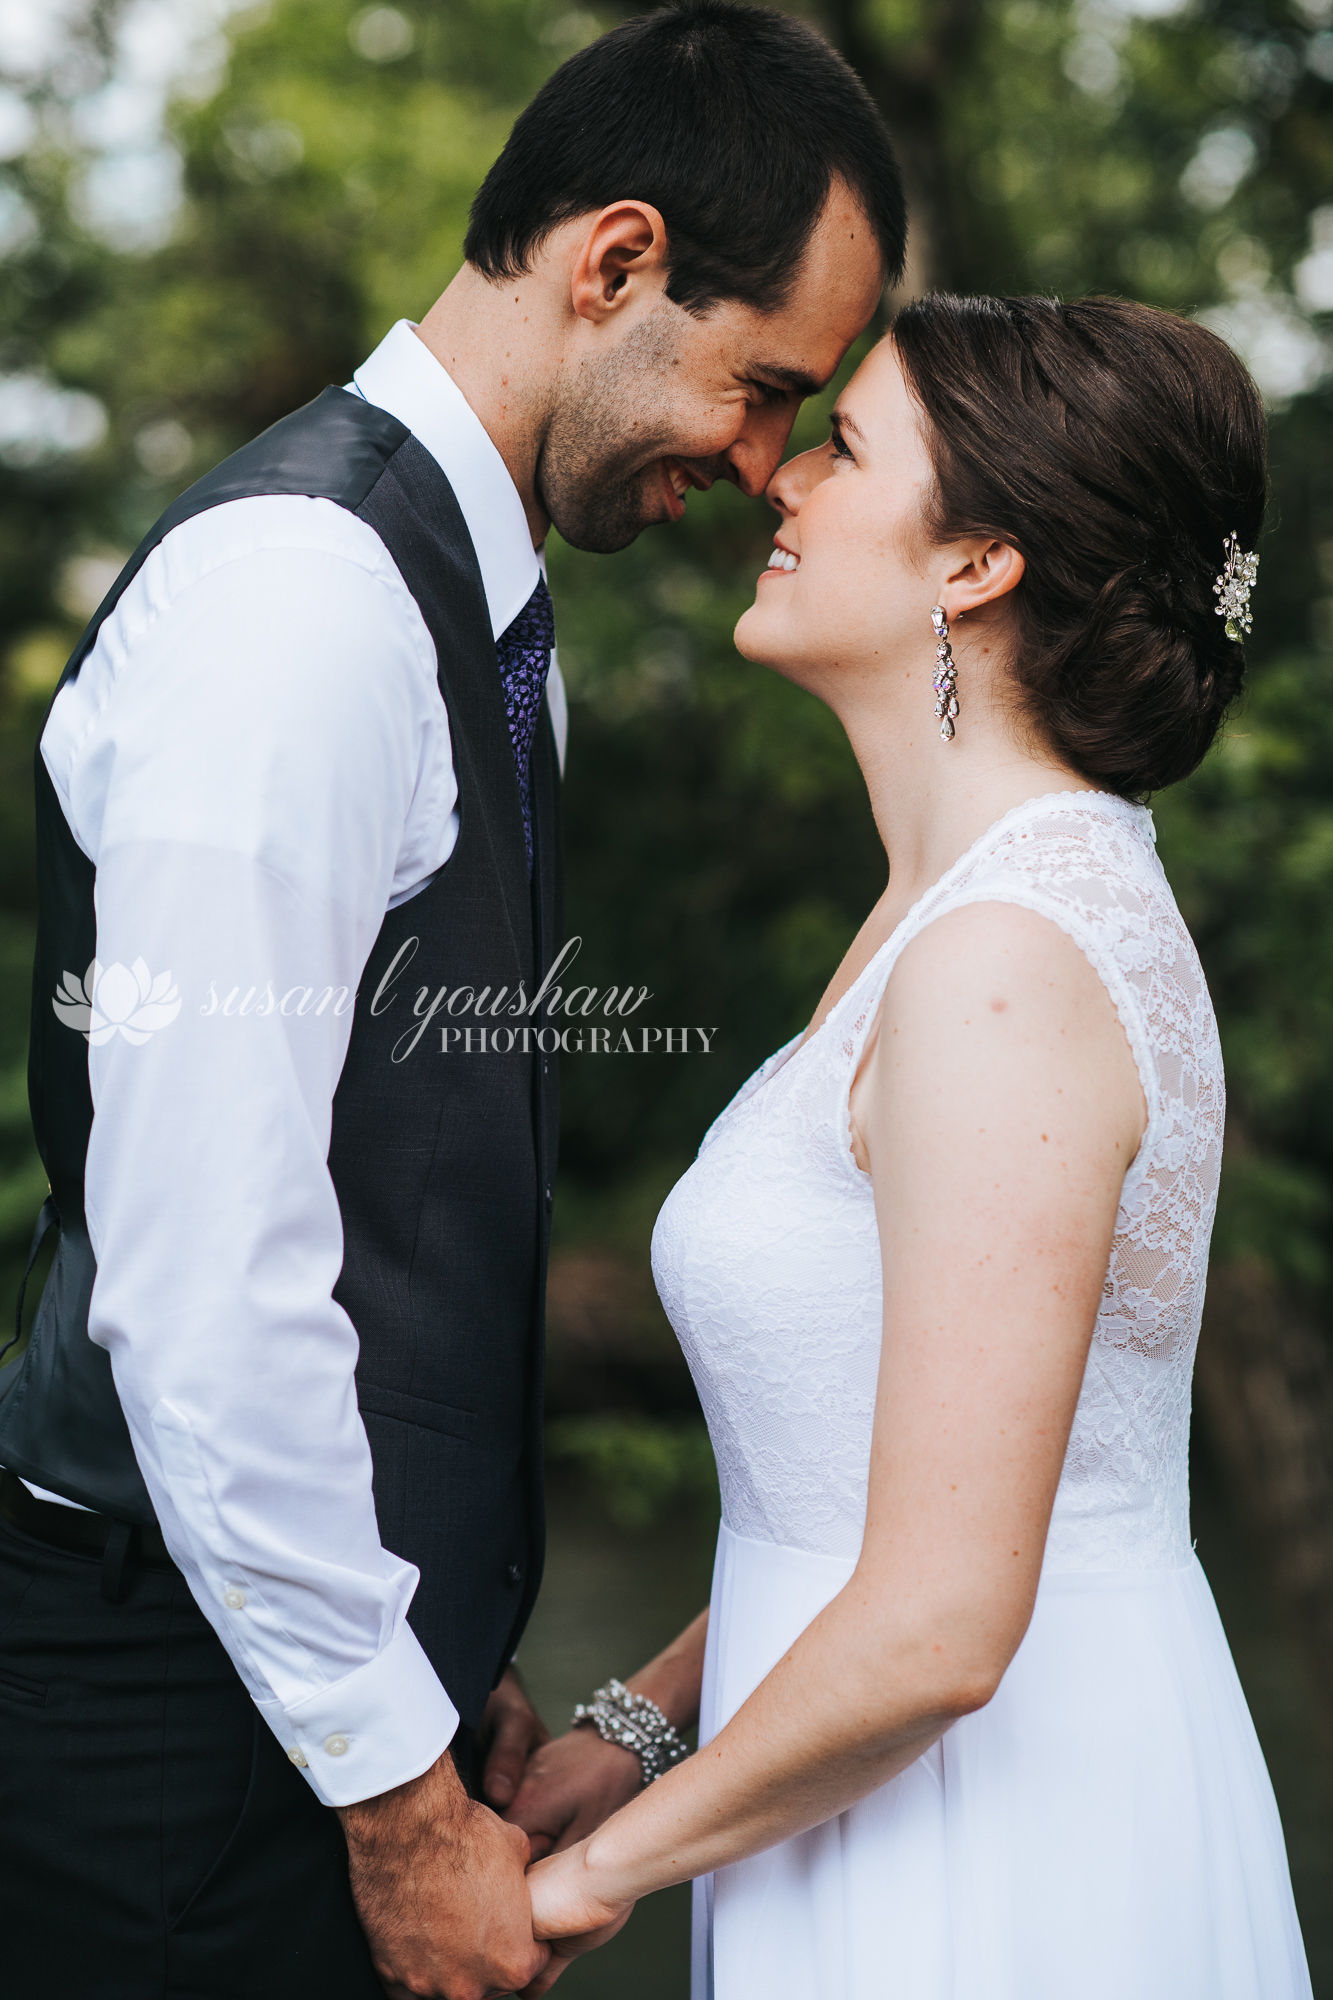 Adena and  Erik Wedding 05-17-2019 SLY Photography-42.jpg